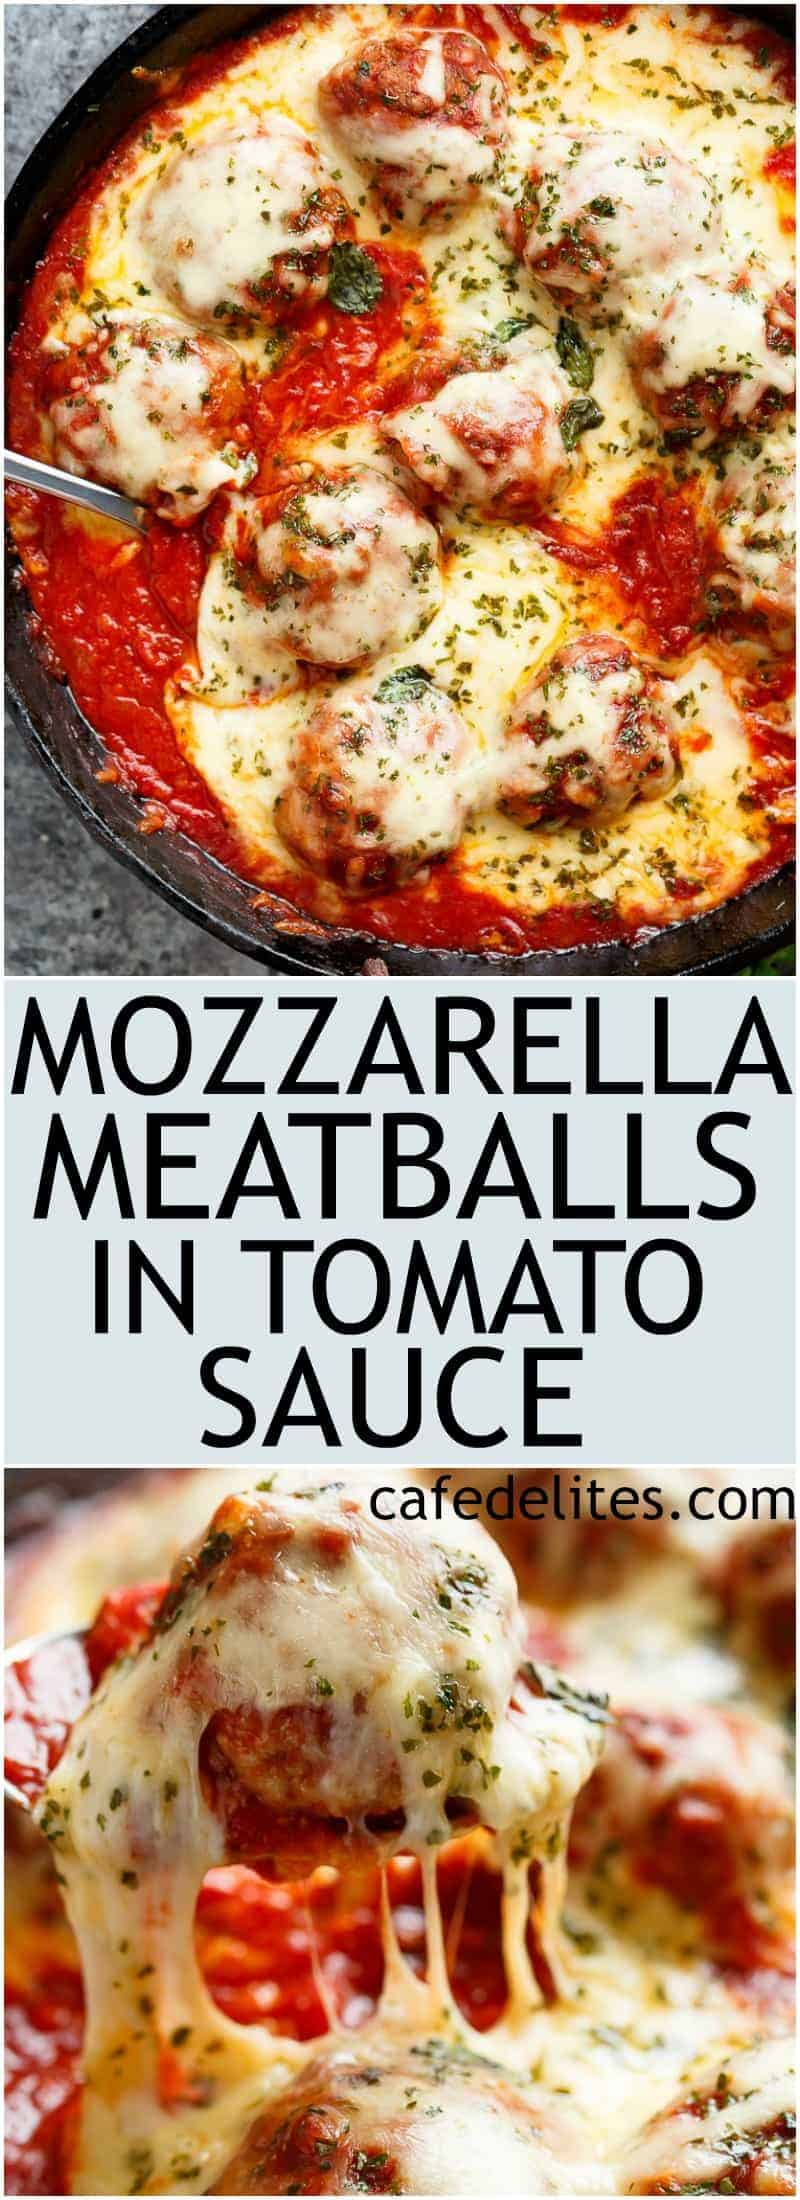 Mozzarella Meatballs In Tomato Sauce are juicy and soft meatballs, simmered in a homemade tomato sauce and topped with melted mozzarella! | https://cafedelites.com